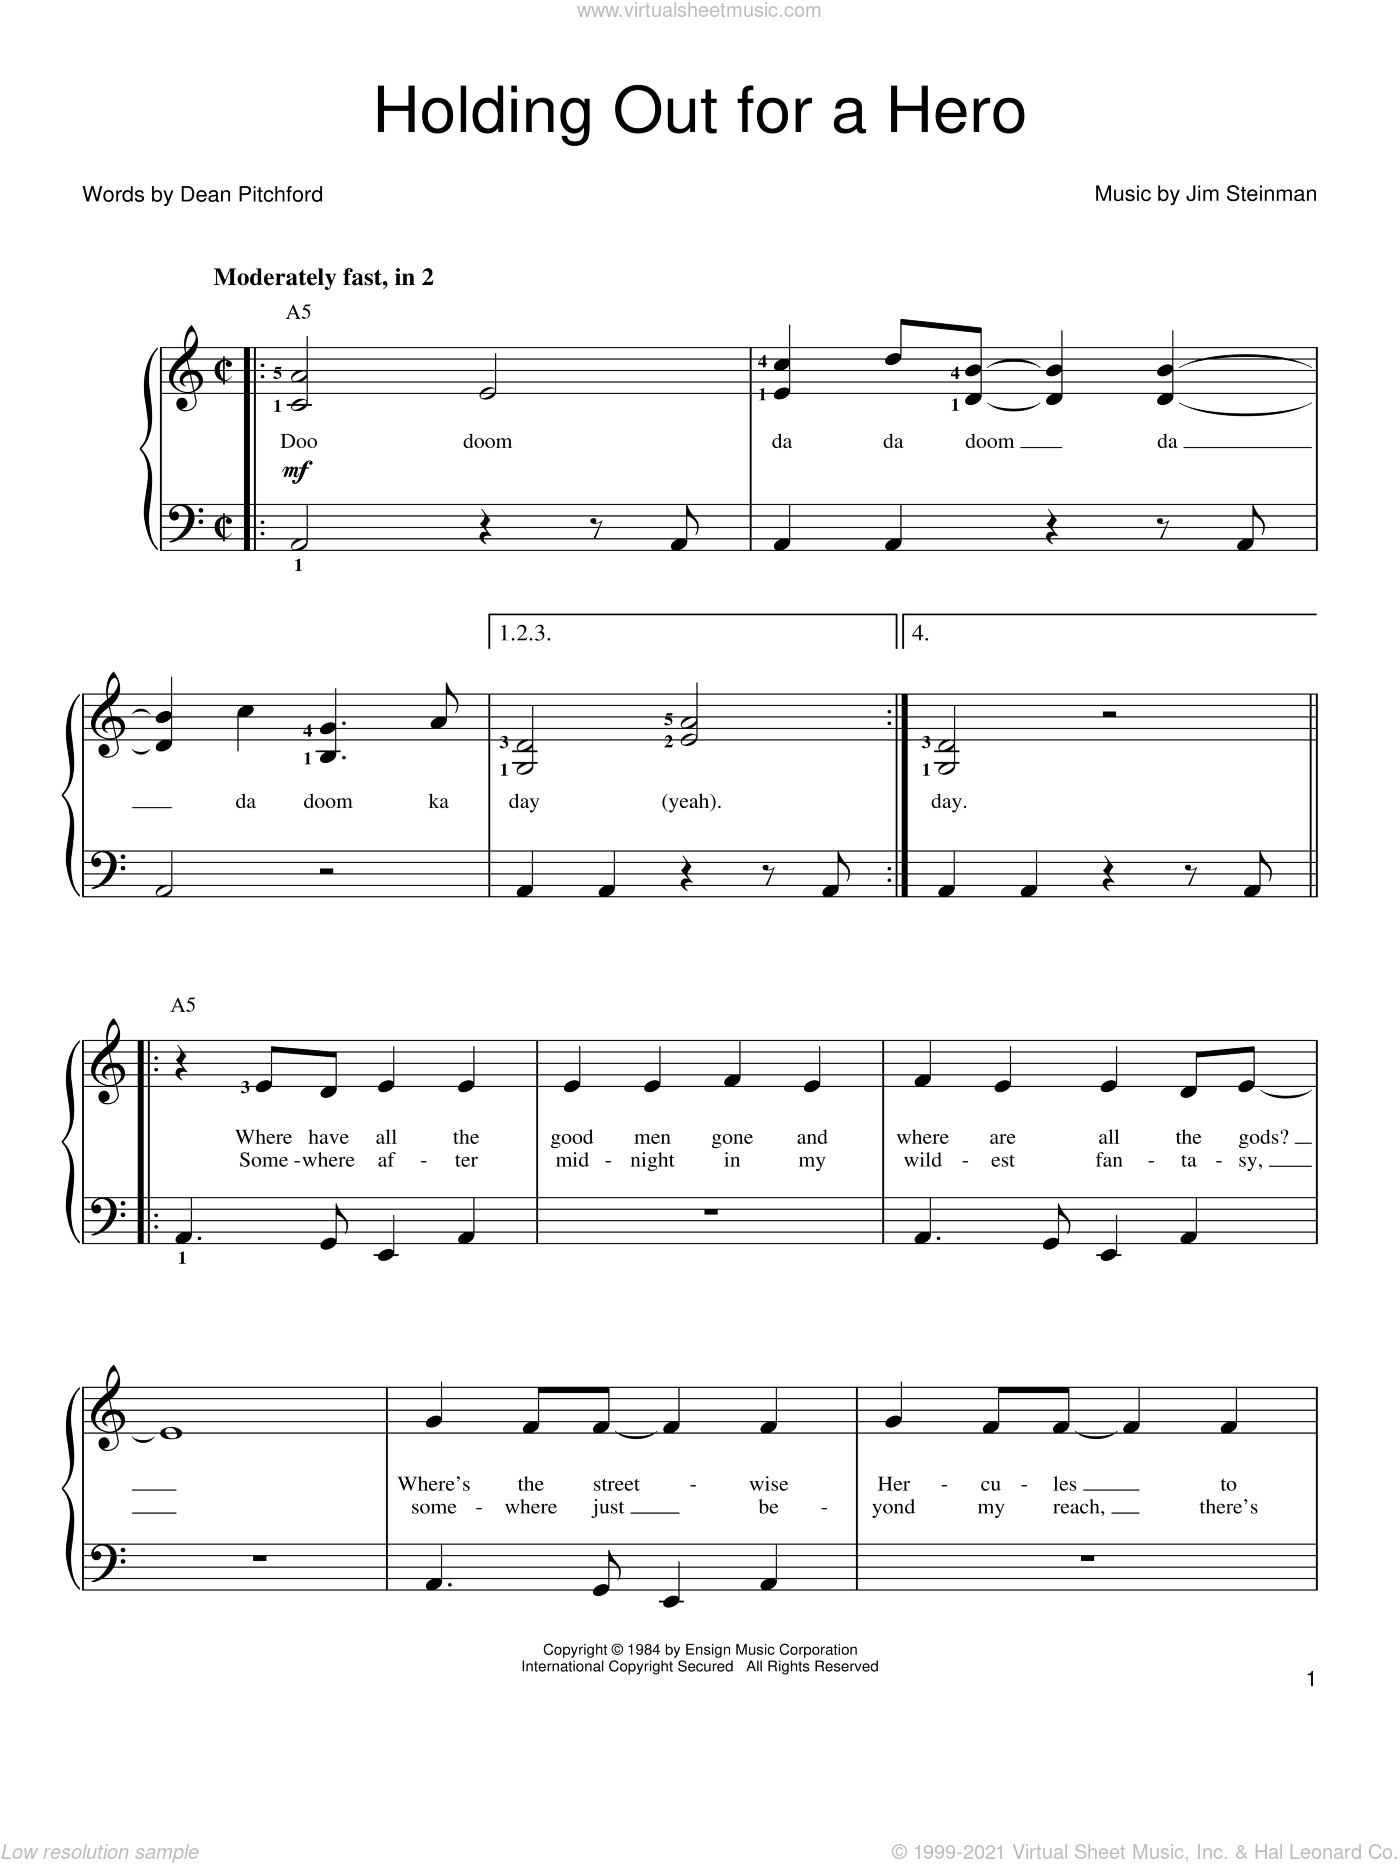 Holding Out For A Hero sheet music for piano solo by Bonnie Tyler, Footloose (Movie), Frou Frou, Dean Pitchford and Jim Steinman, easy skill level